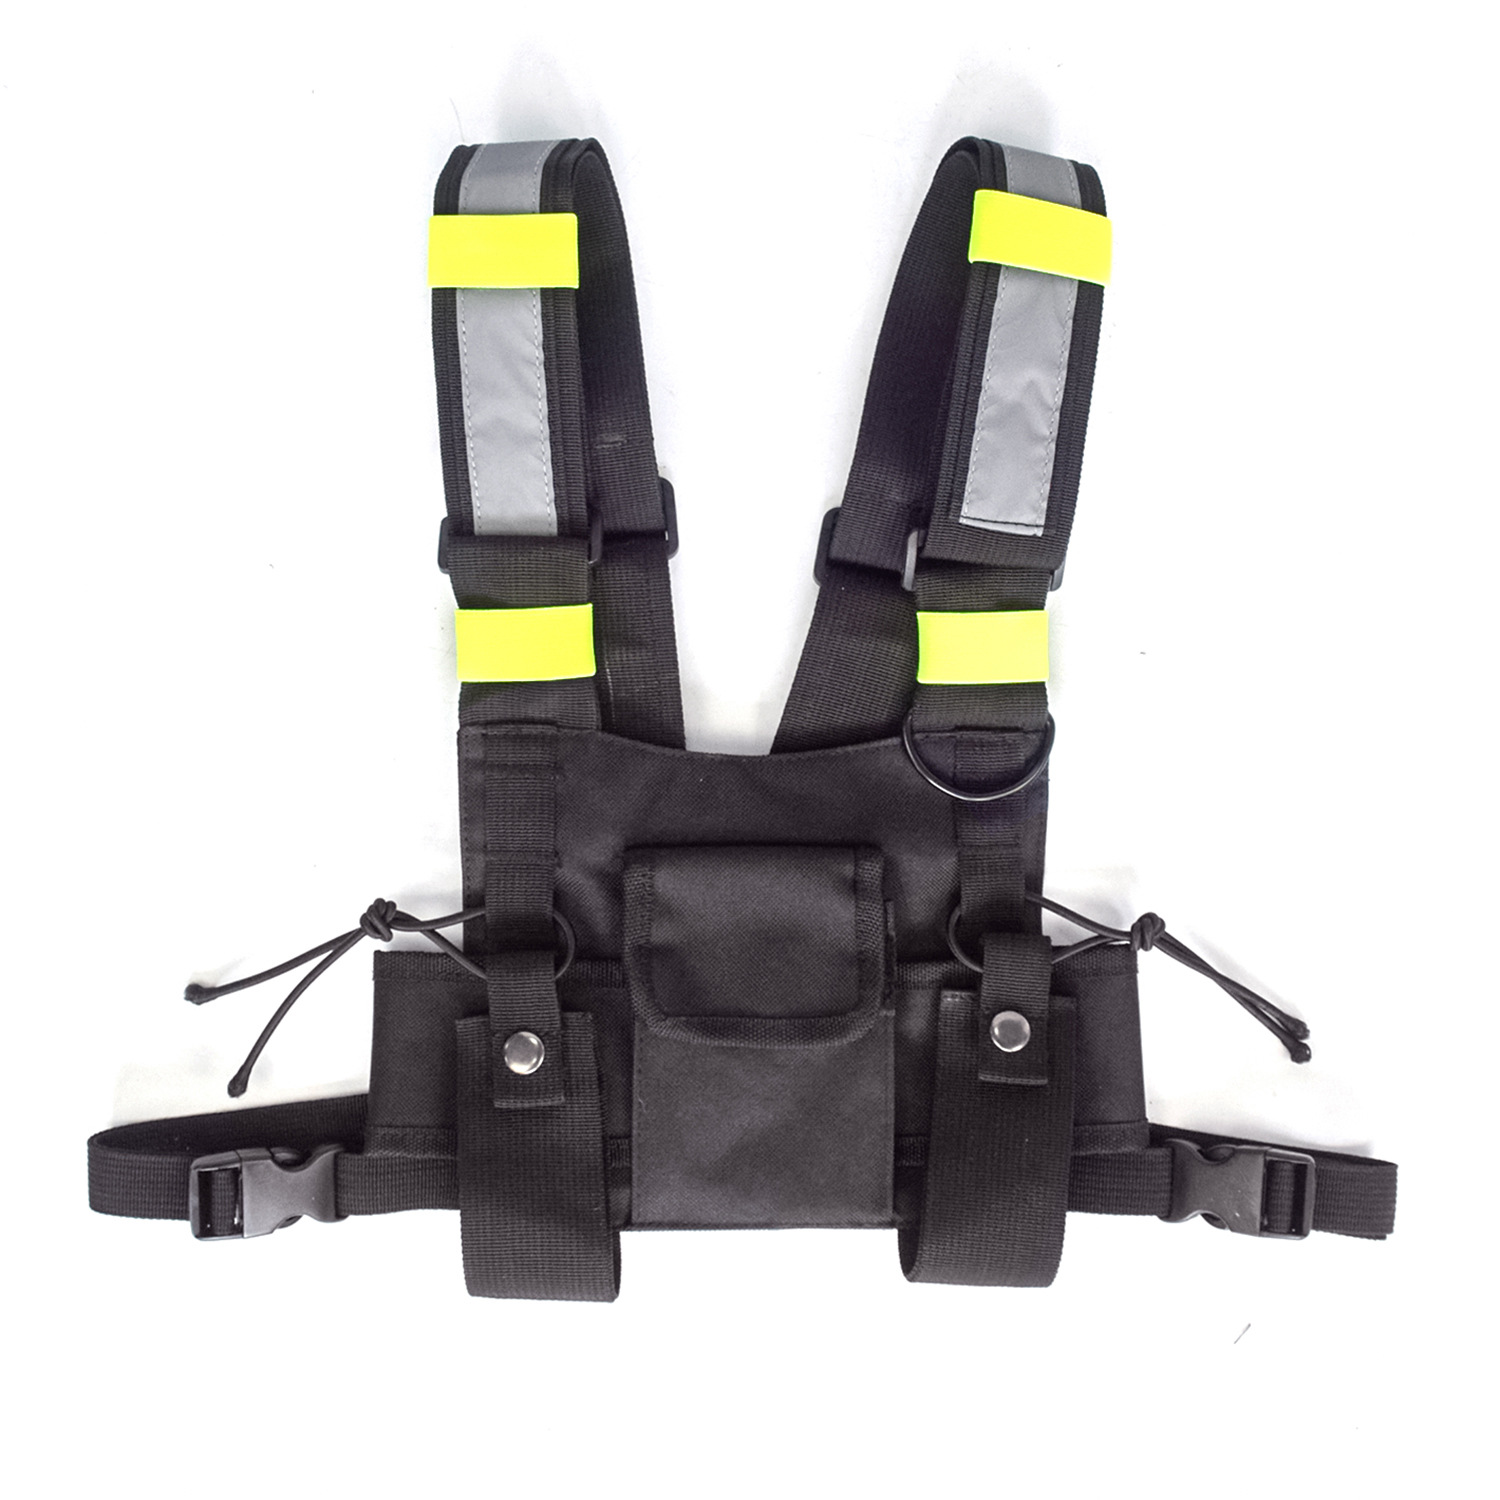 Adjustable Black Vest with  Reflective Stripes Chest Rig Bag for Outdoor Training With reflective strip_One size (adjustable)